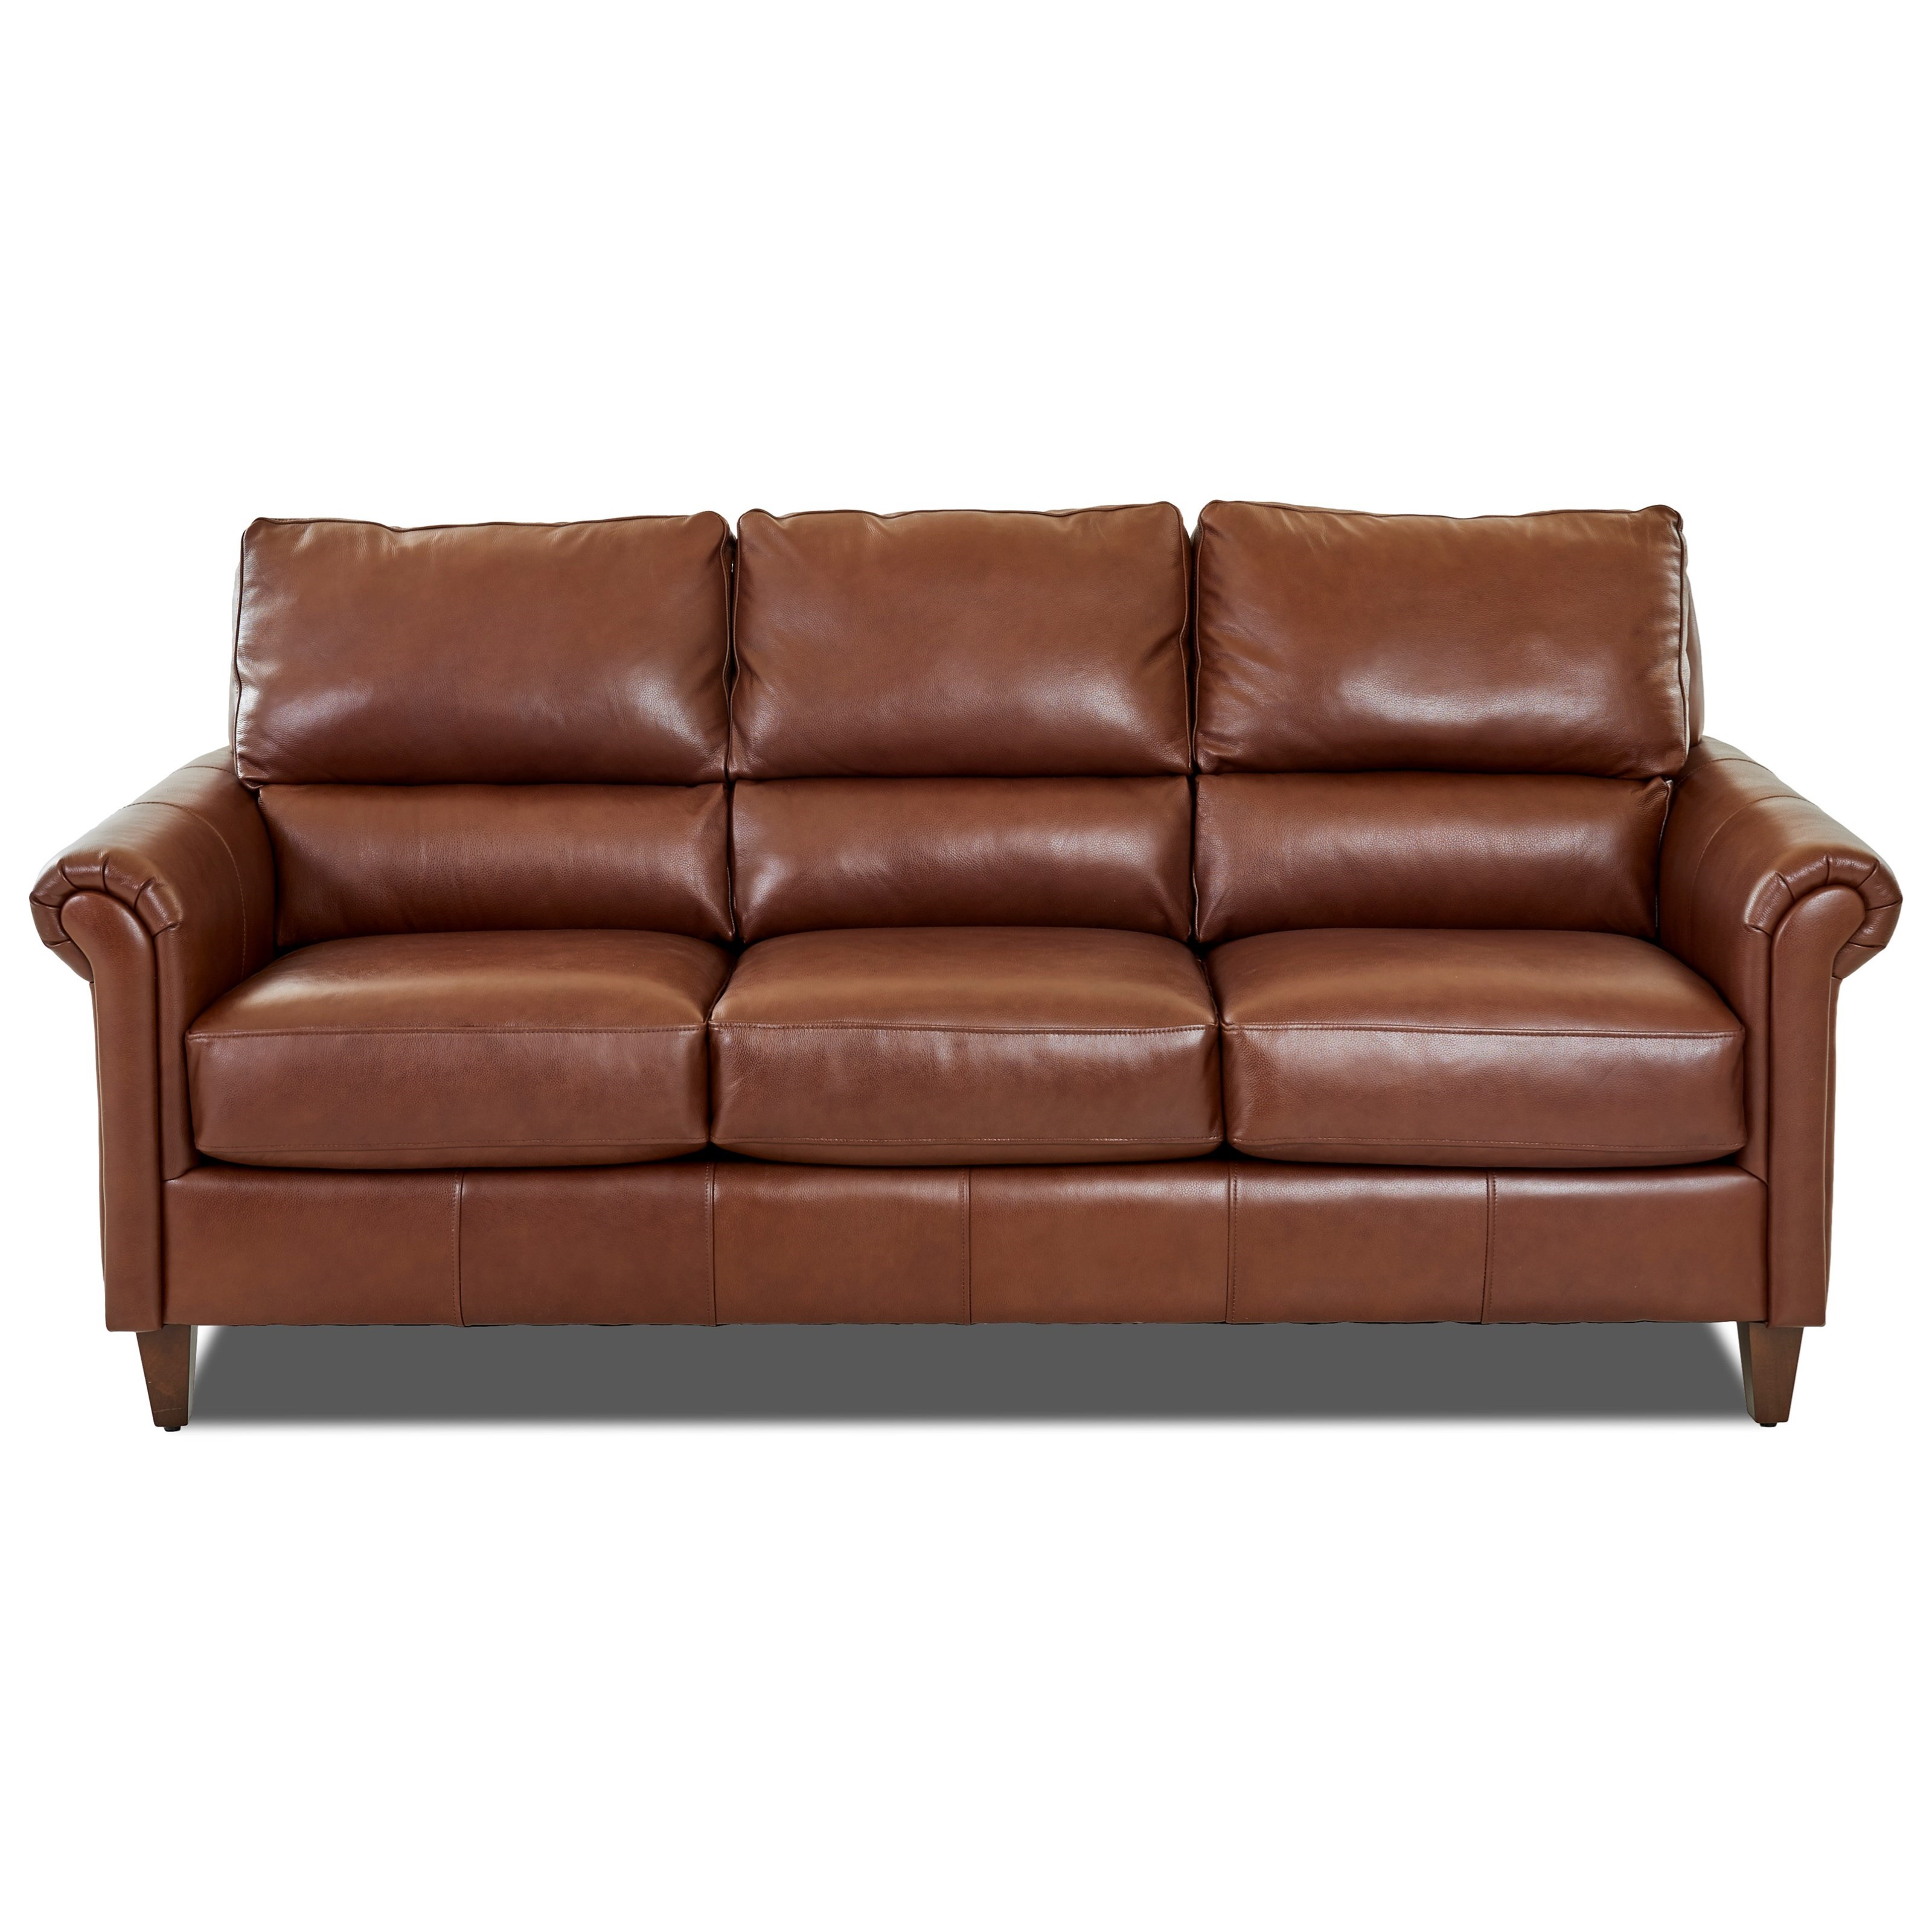 Transitional Leather Sofa with Pub Back